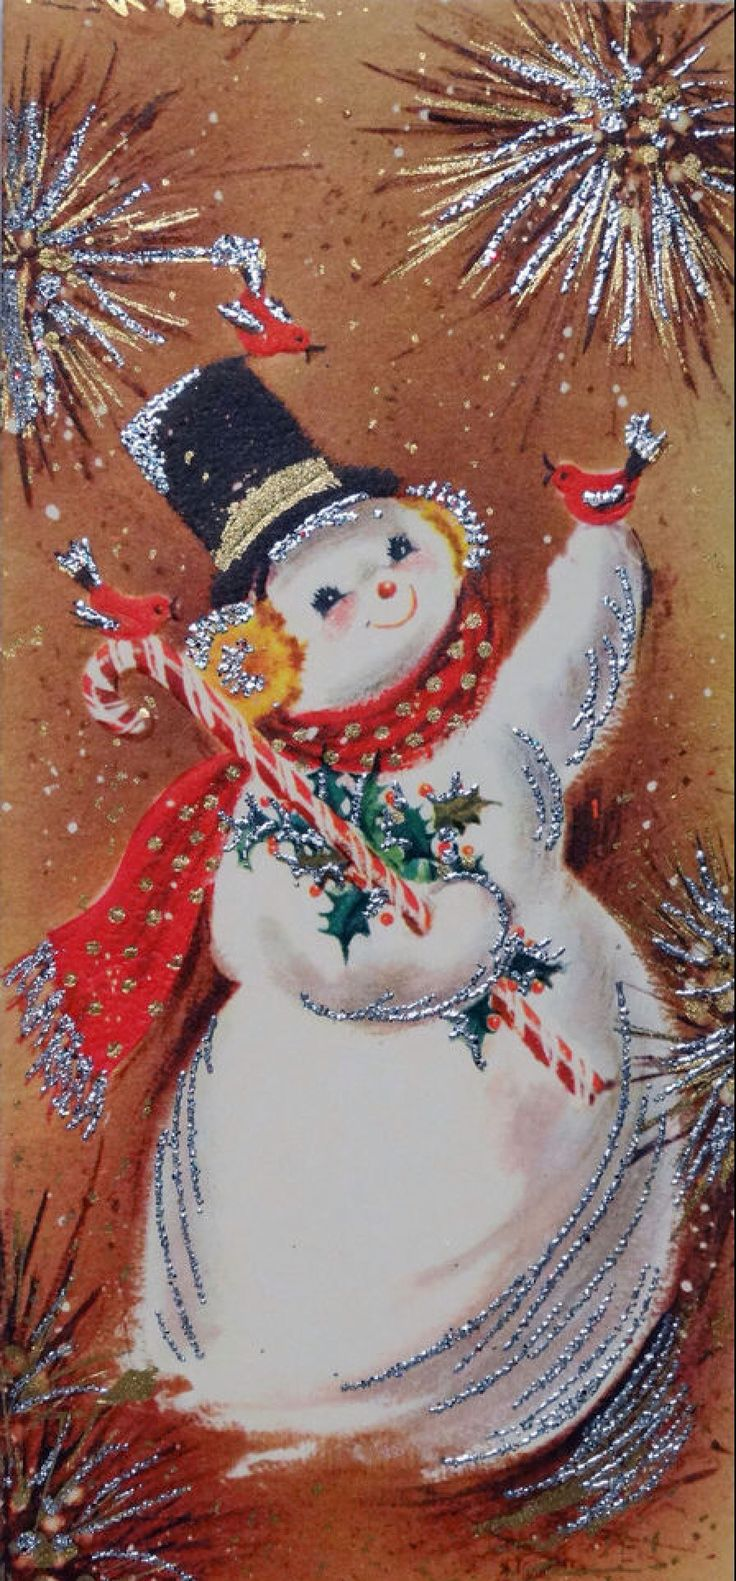 This vintage Christmas card with glitter and a smiling snowman looks like something from my childhood.